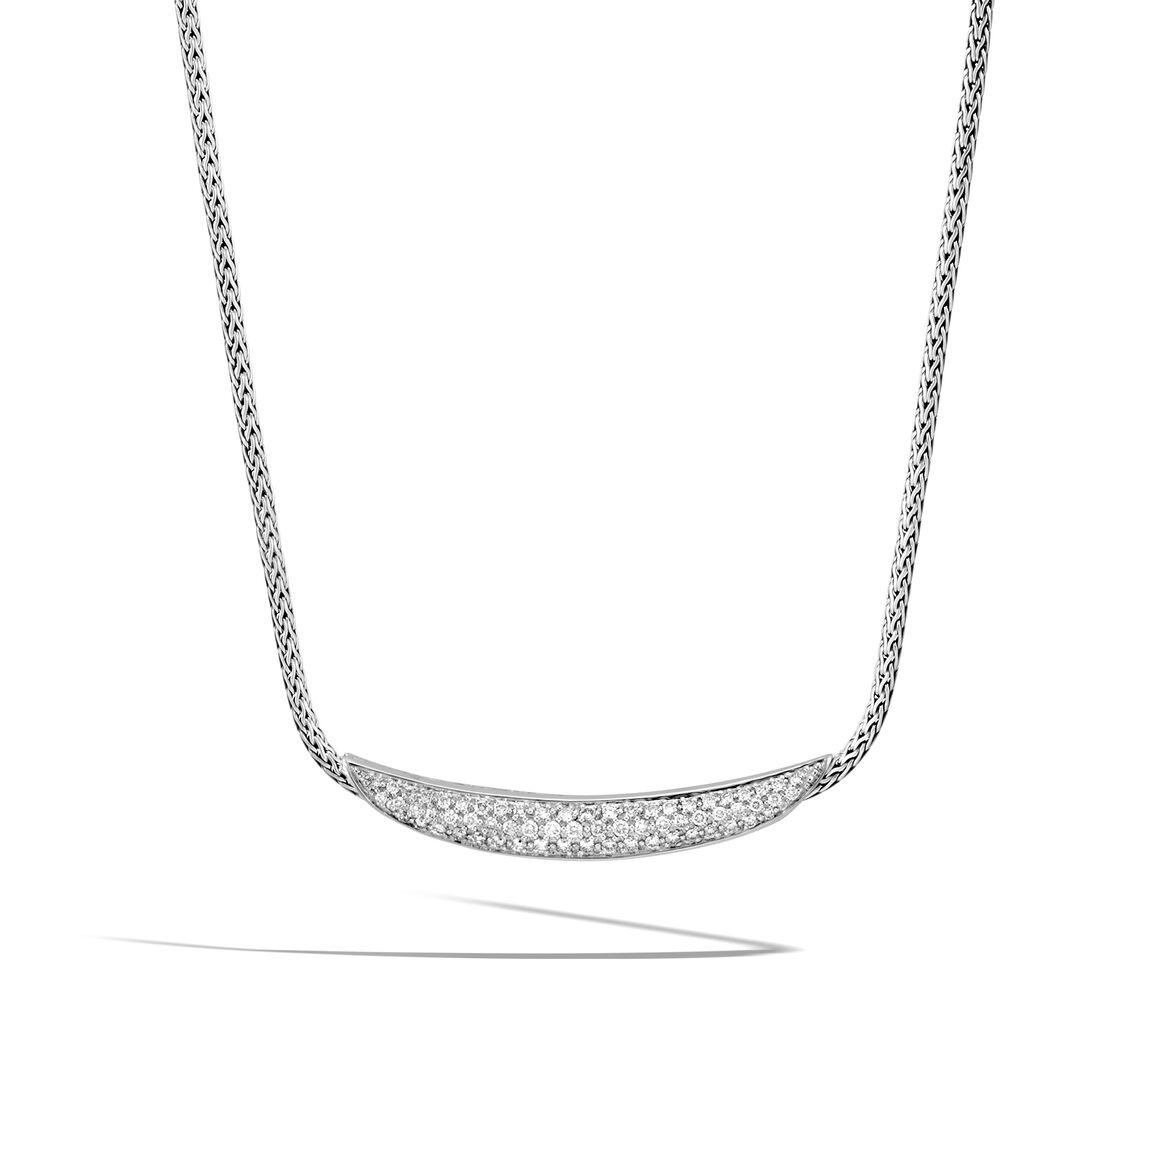 Classic Chain Necklace in Silver with Diamonds